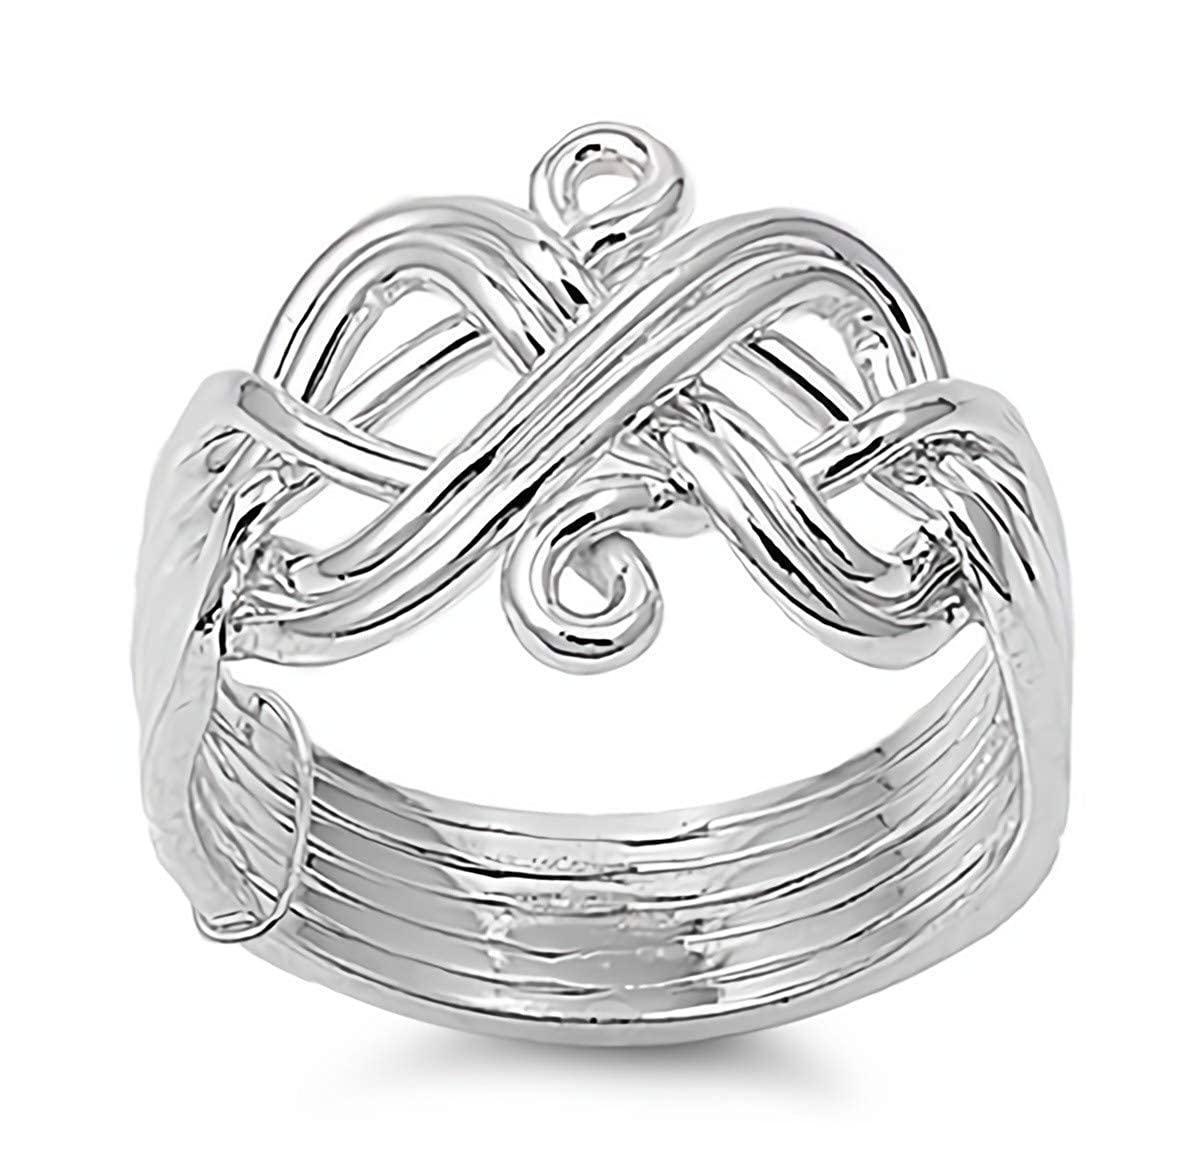 Glitzs Jewels 925 Sterling Silver Ring Cute Jewelry Gift for Women in Gift Box Angel